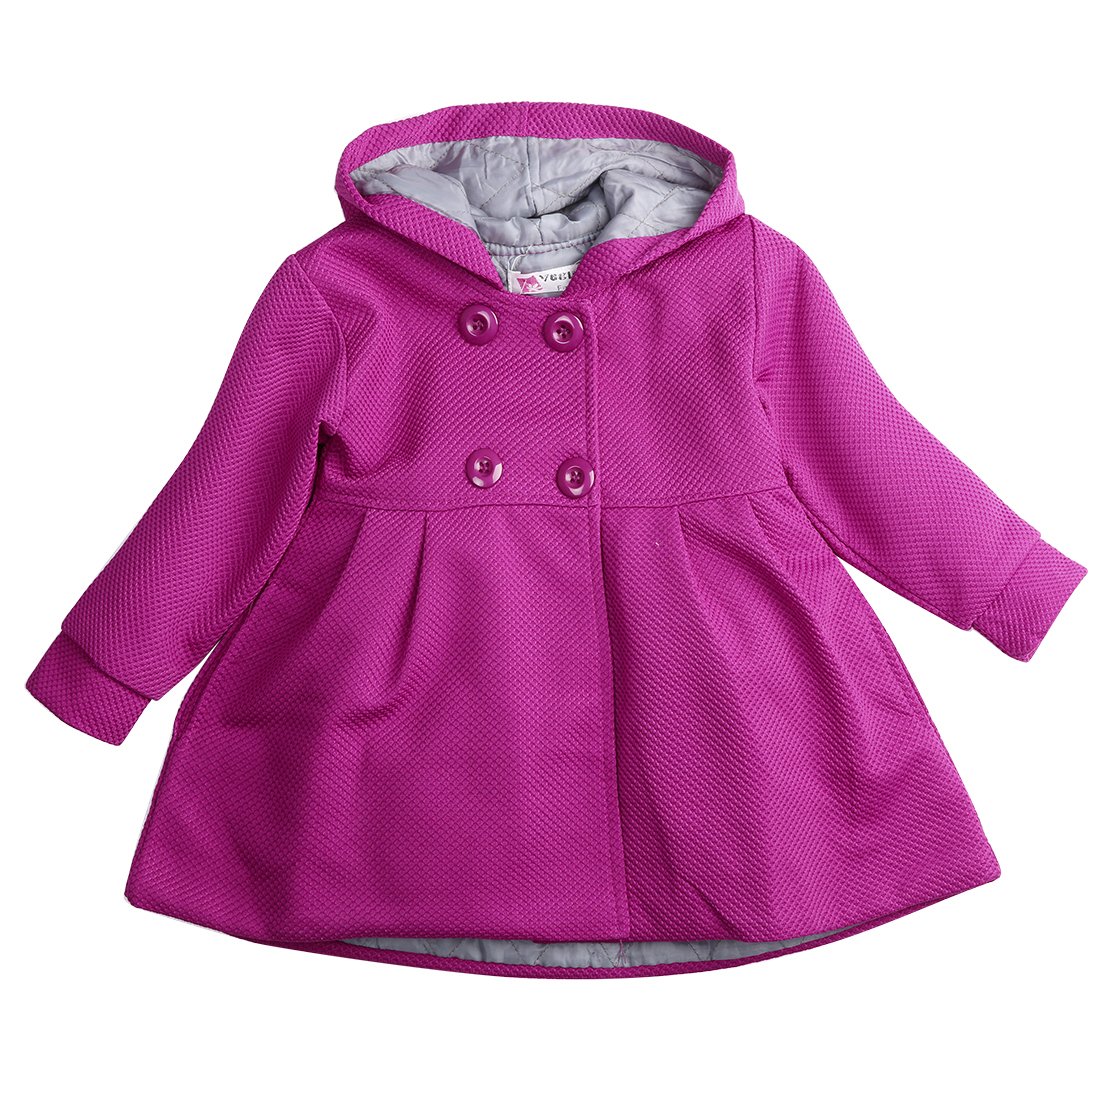 1e627c36ed6b 2017 New Baby Toddler Girls Fall Winter Horn Button Hooded Pea Coat  Outerwear Jacket -in Jackets   Coats from Mother   Kids on Aliexpress.com